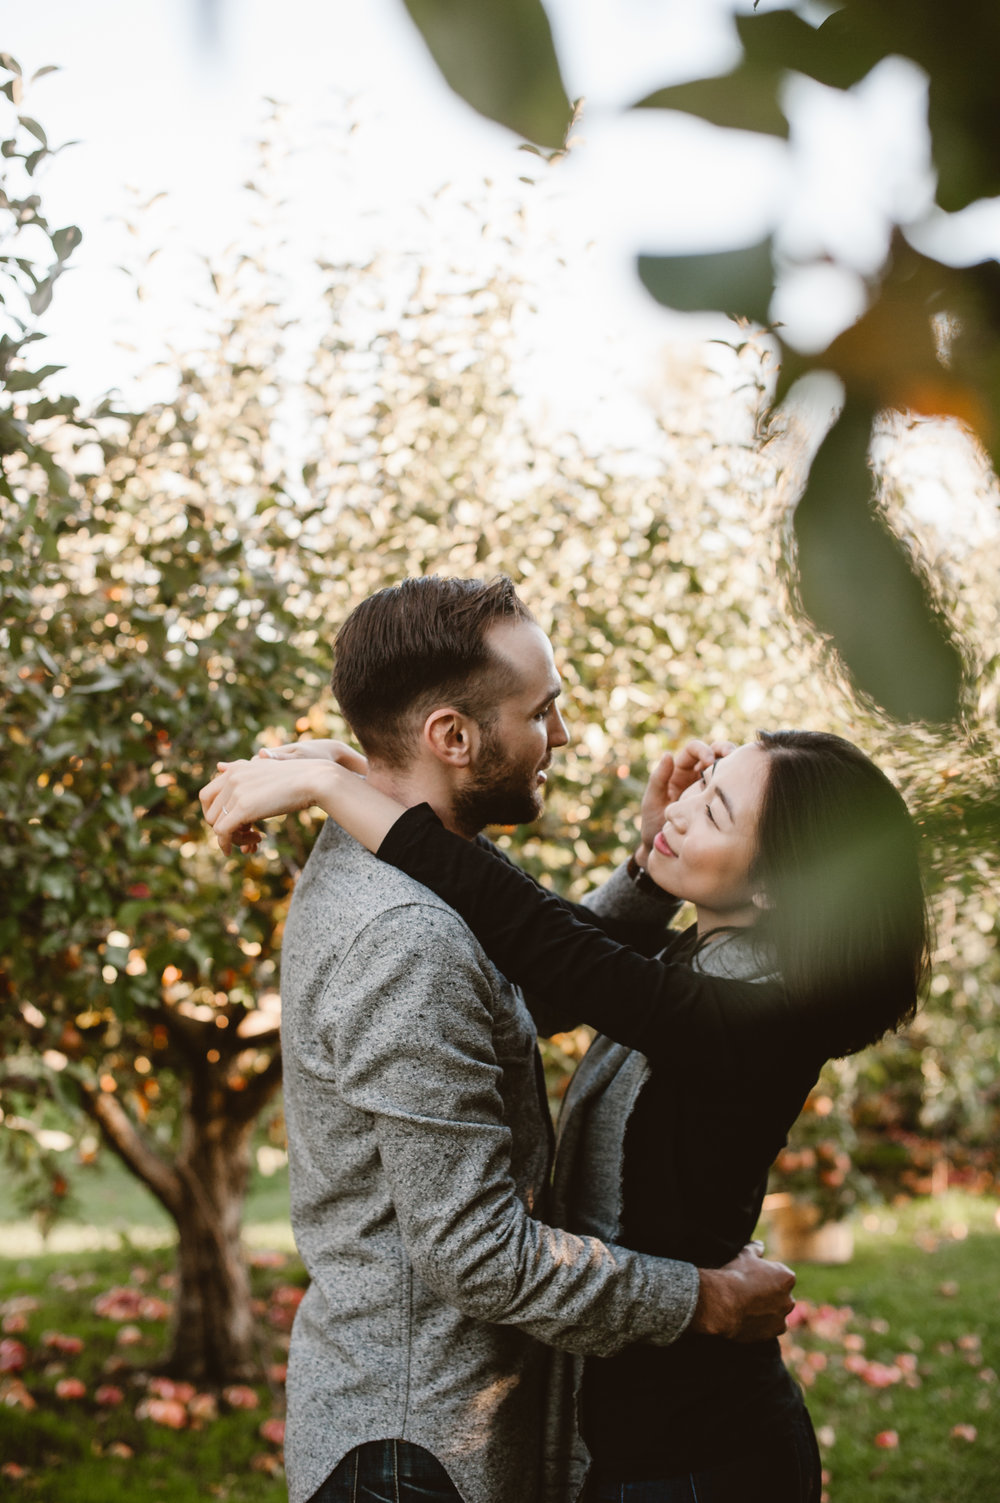 Midwest Apple Orchard4 (whenwewed.co)